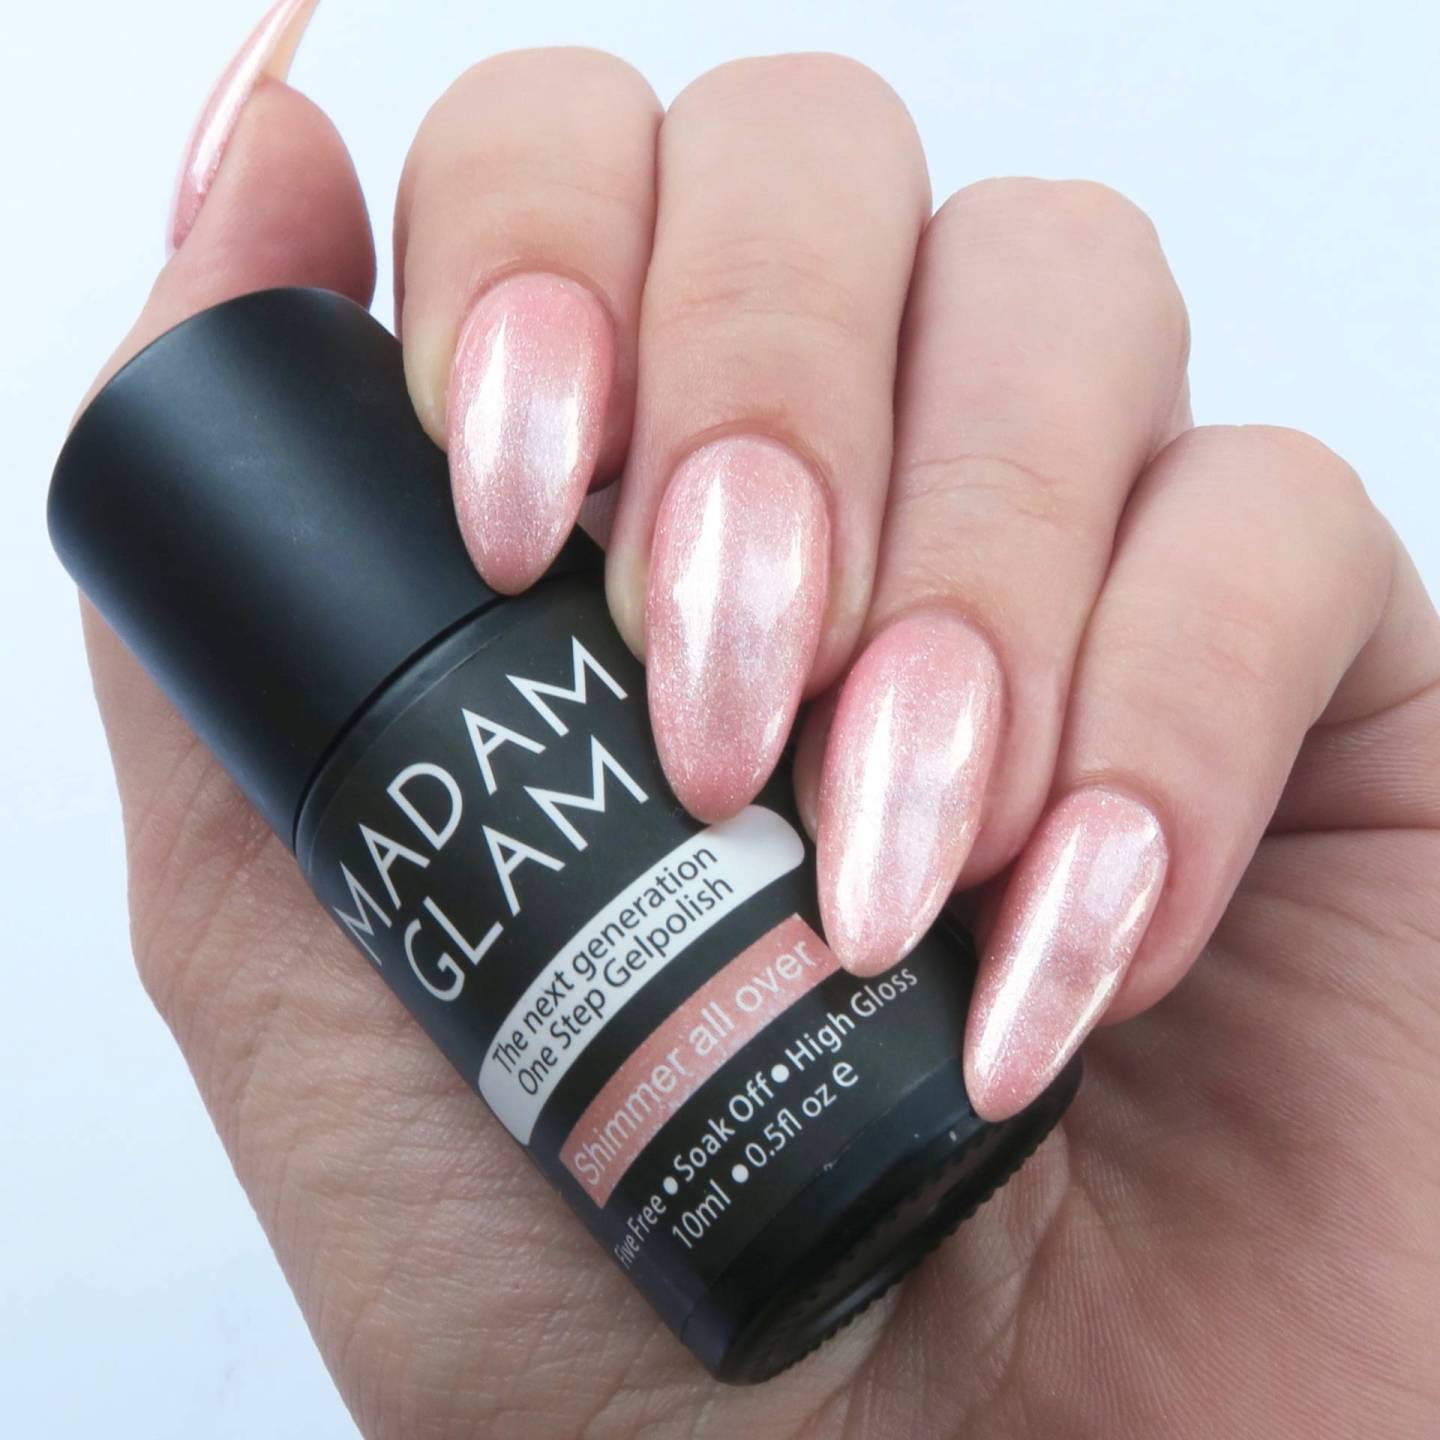 Madam-Glam-One-Step-Gels-Shimmer-All-Over-1